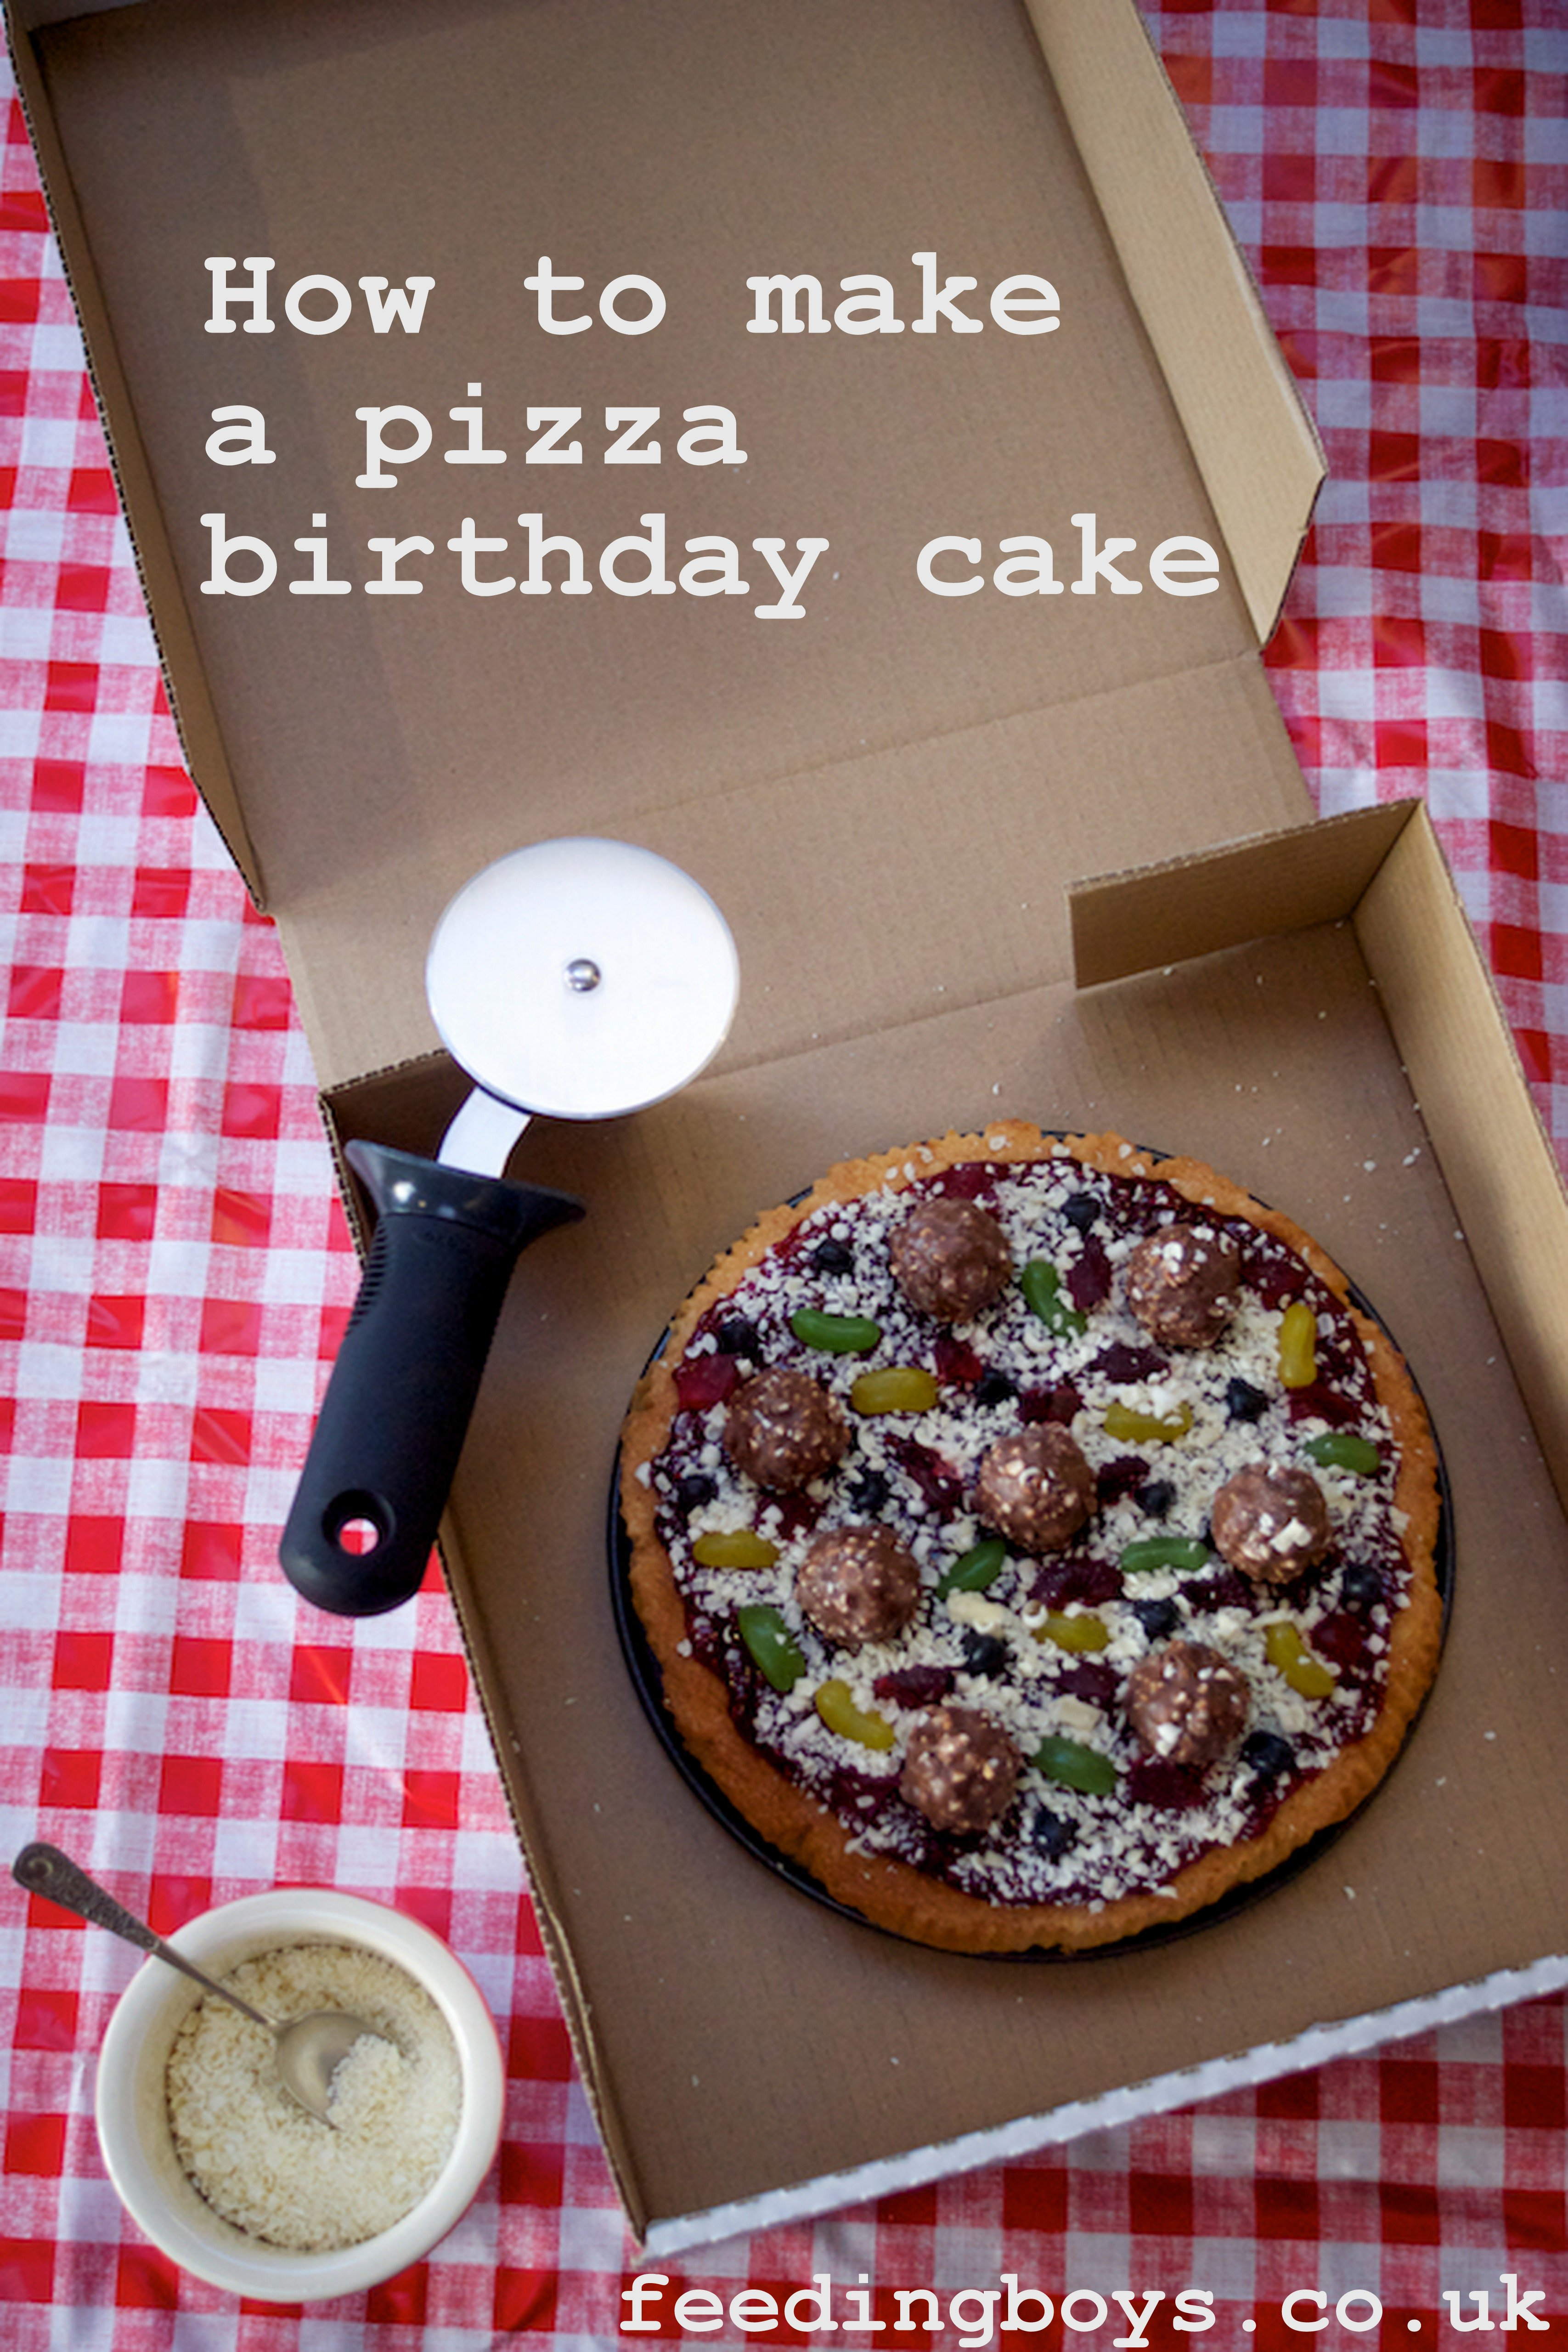 Remarkable How To Make A Pizza Birthday Cake Funny Birthday Cards Online Alyptdamsfinfo